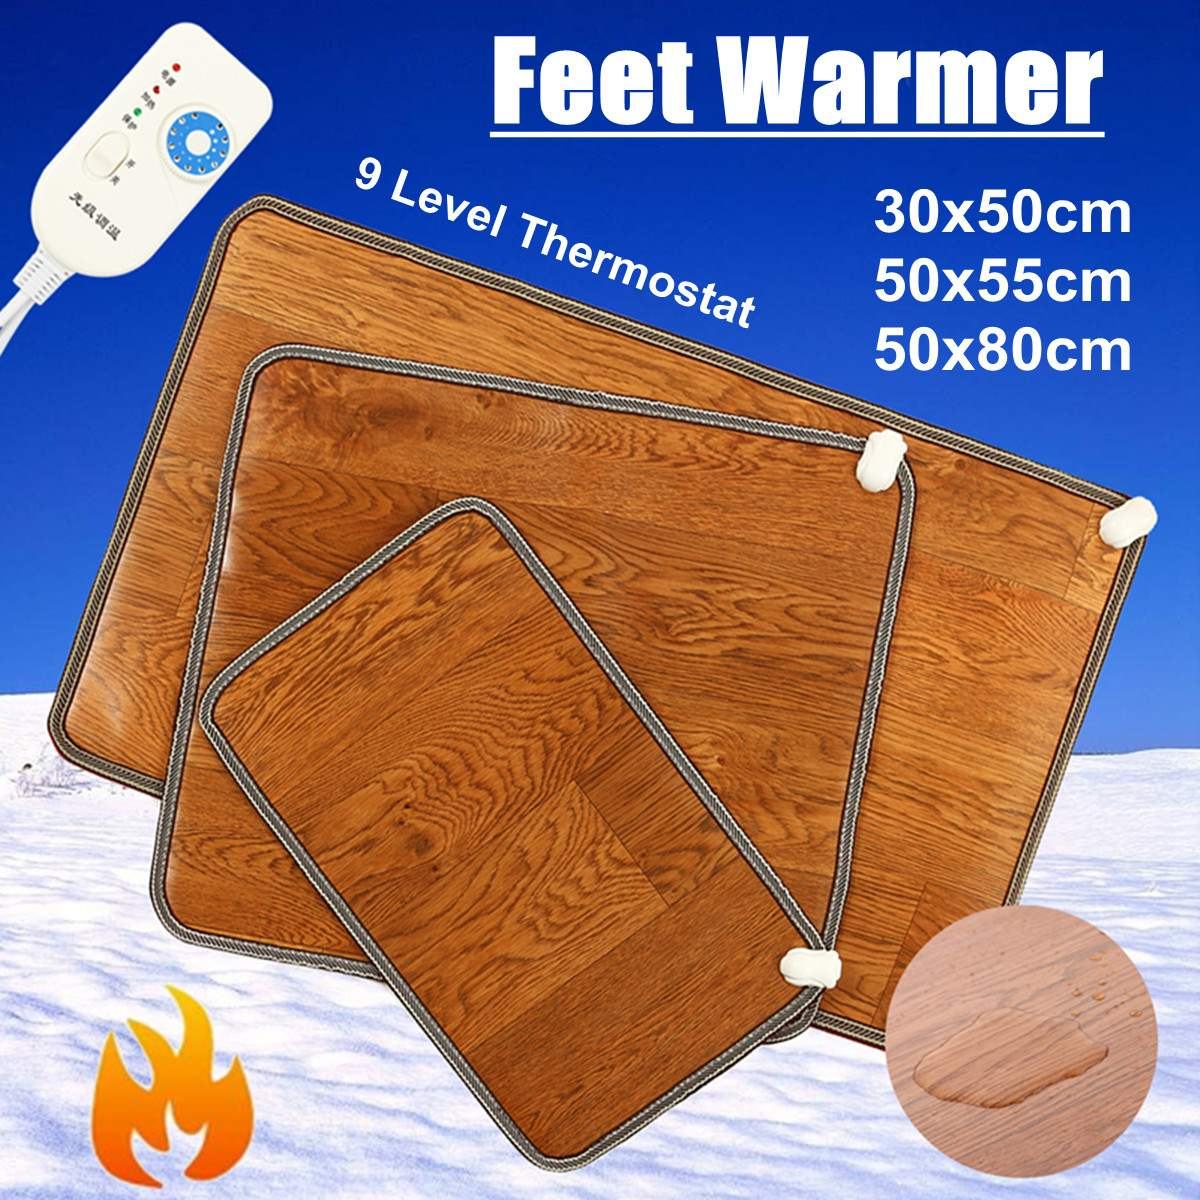 Leather Heating Foot Mat Warmer Electric Heating Pads Feet Leg Warmer Carpet Thermostat Warming Tools Home OfficeLeather Heating Foot Mat Warmer Electric Heating Pads Feet Leg Warmer Carpet Thermostat Warming Tools Home Office